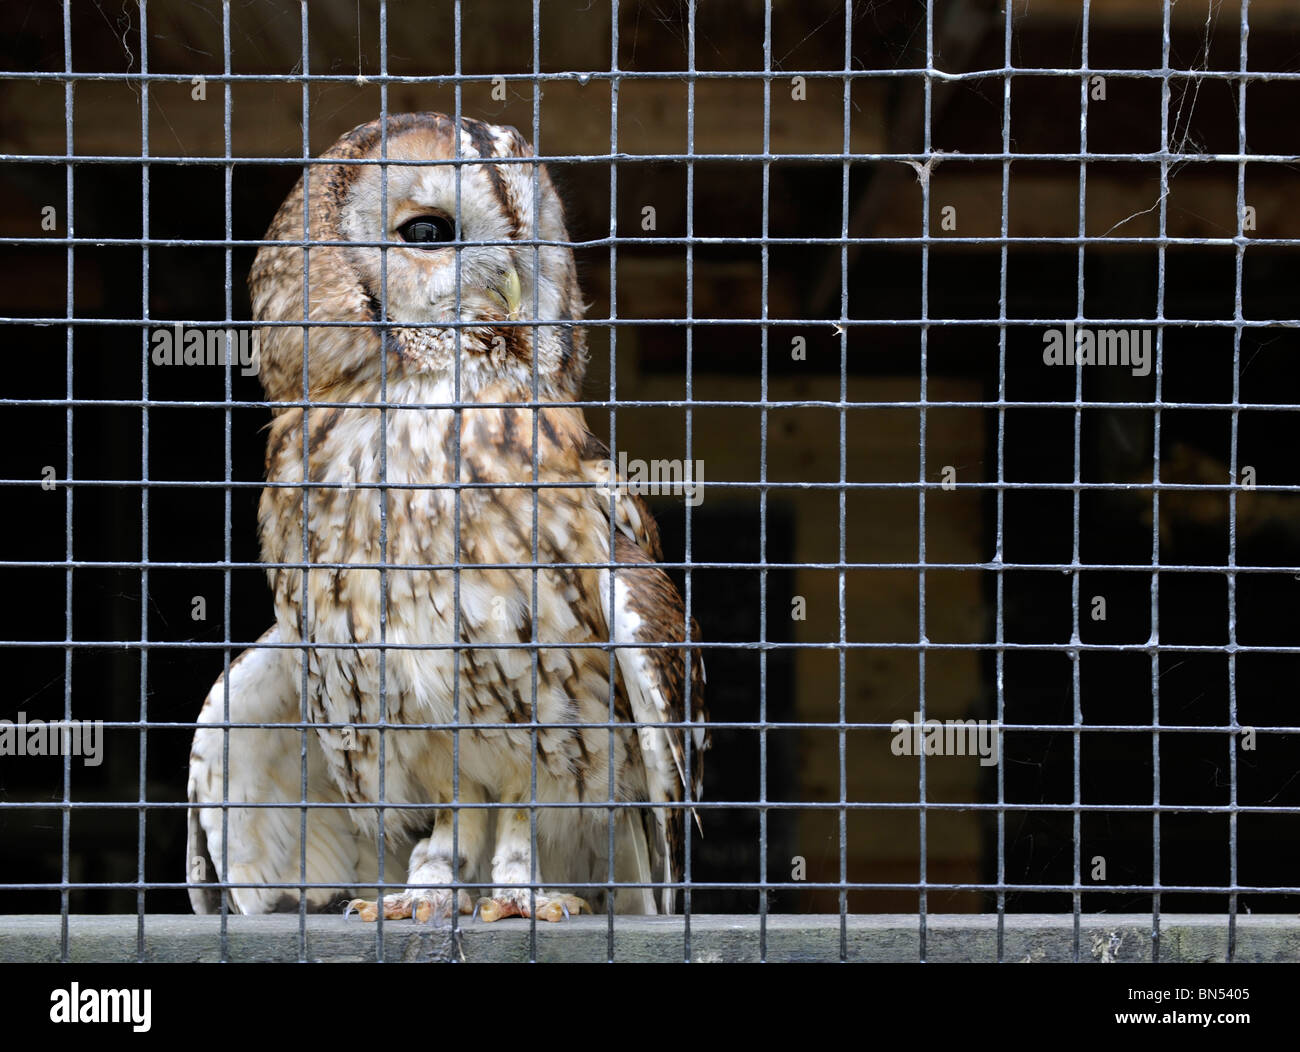 Tawny owl in a cage - Stock Image